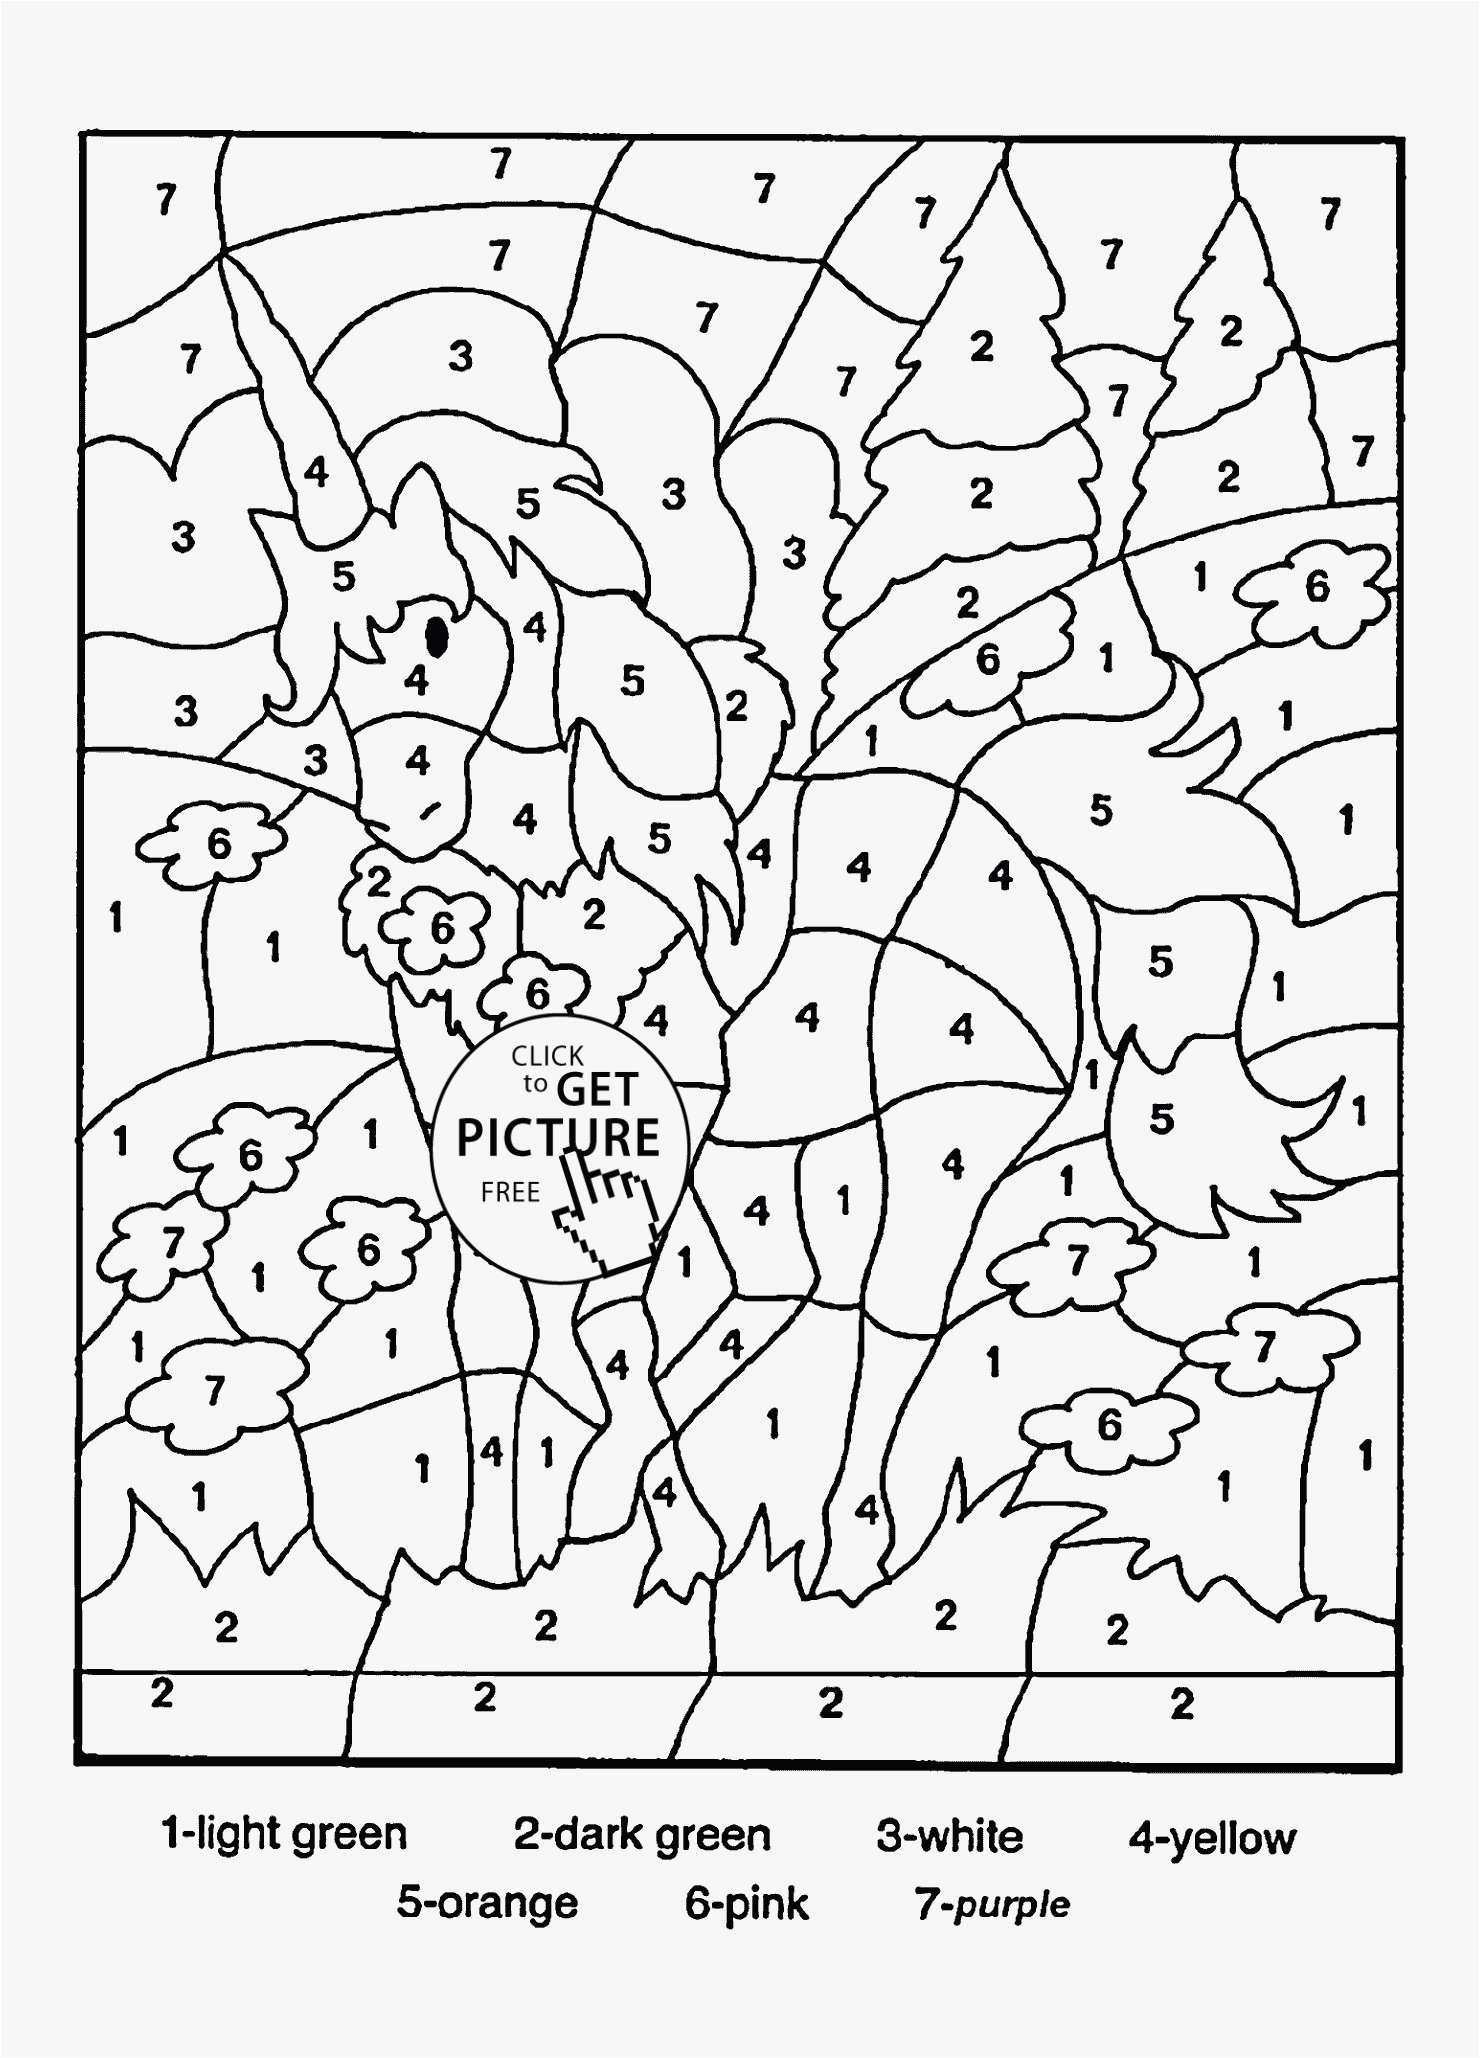 4 h coloring sheets 4 h cloverbud coloring pages coloring pages sheets 4 h coloring